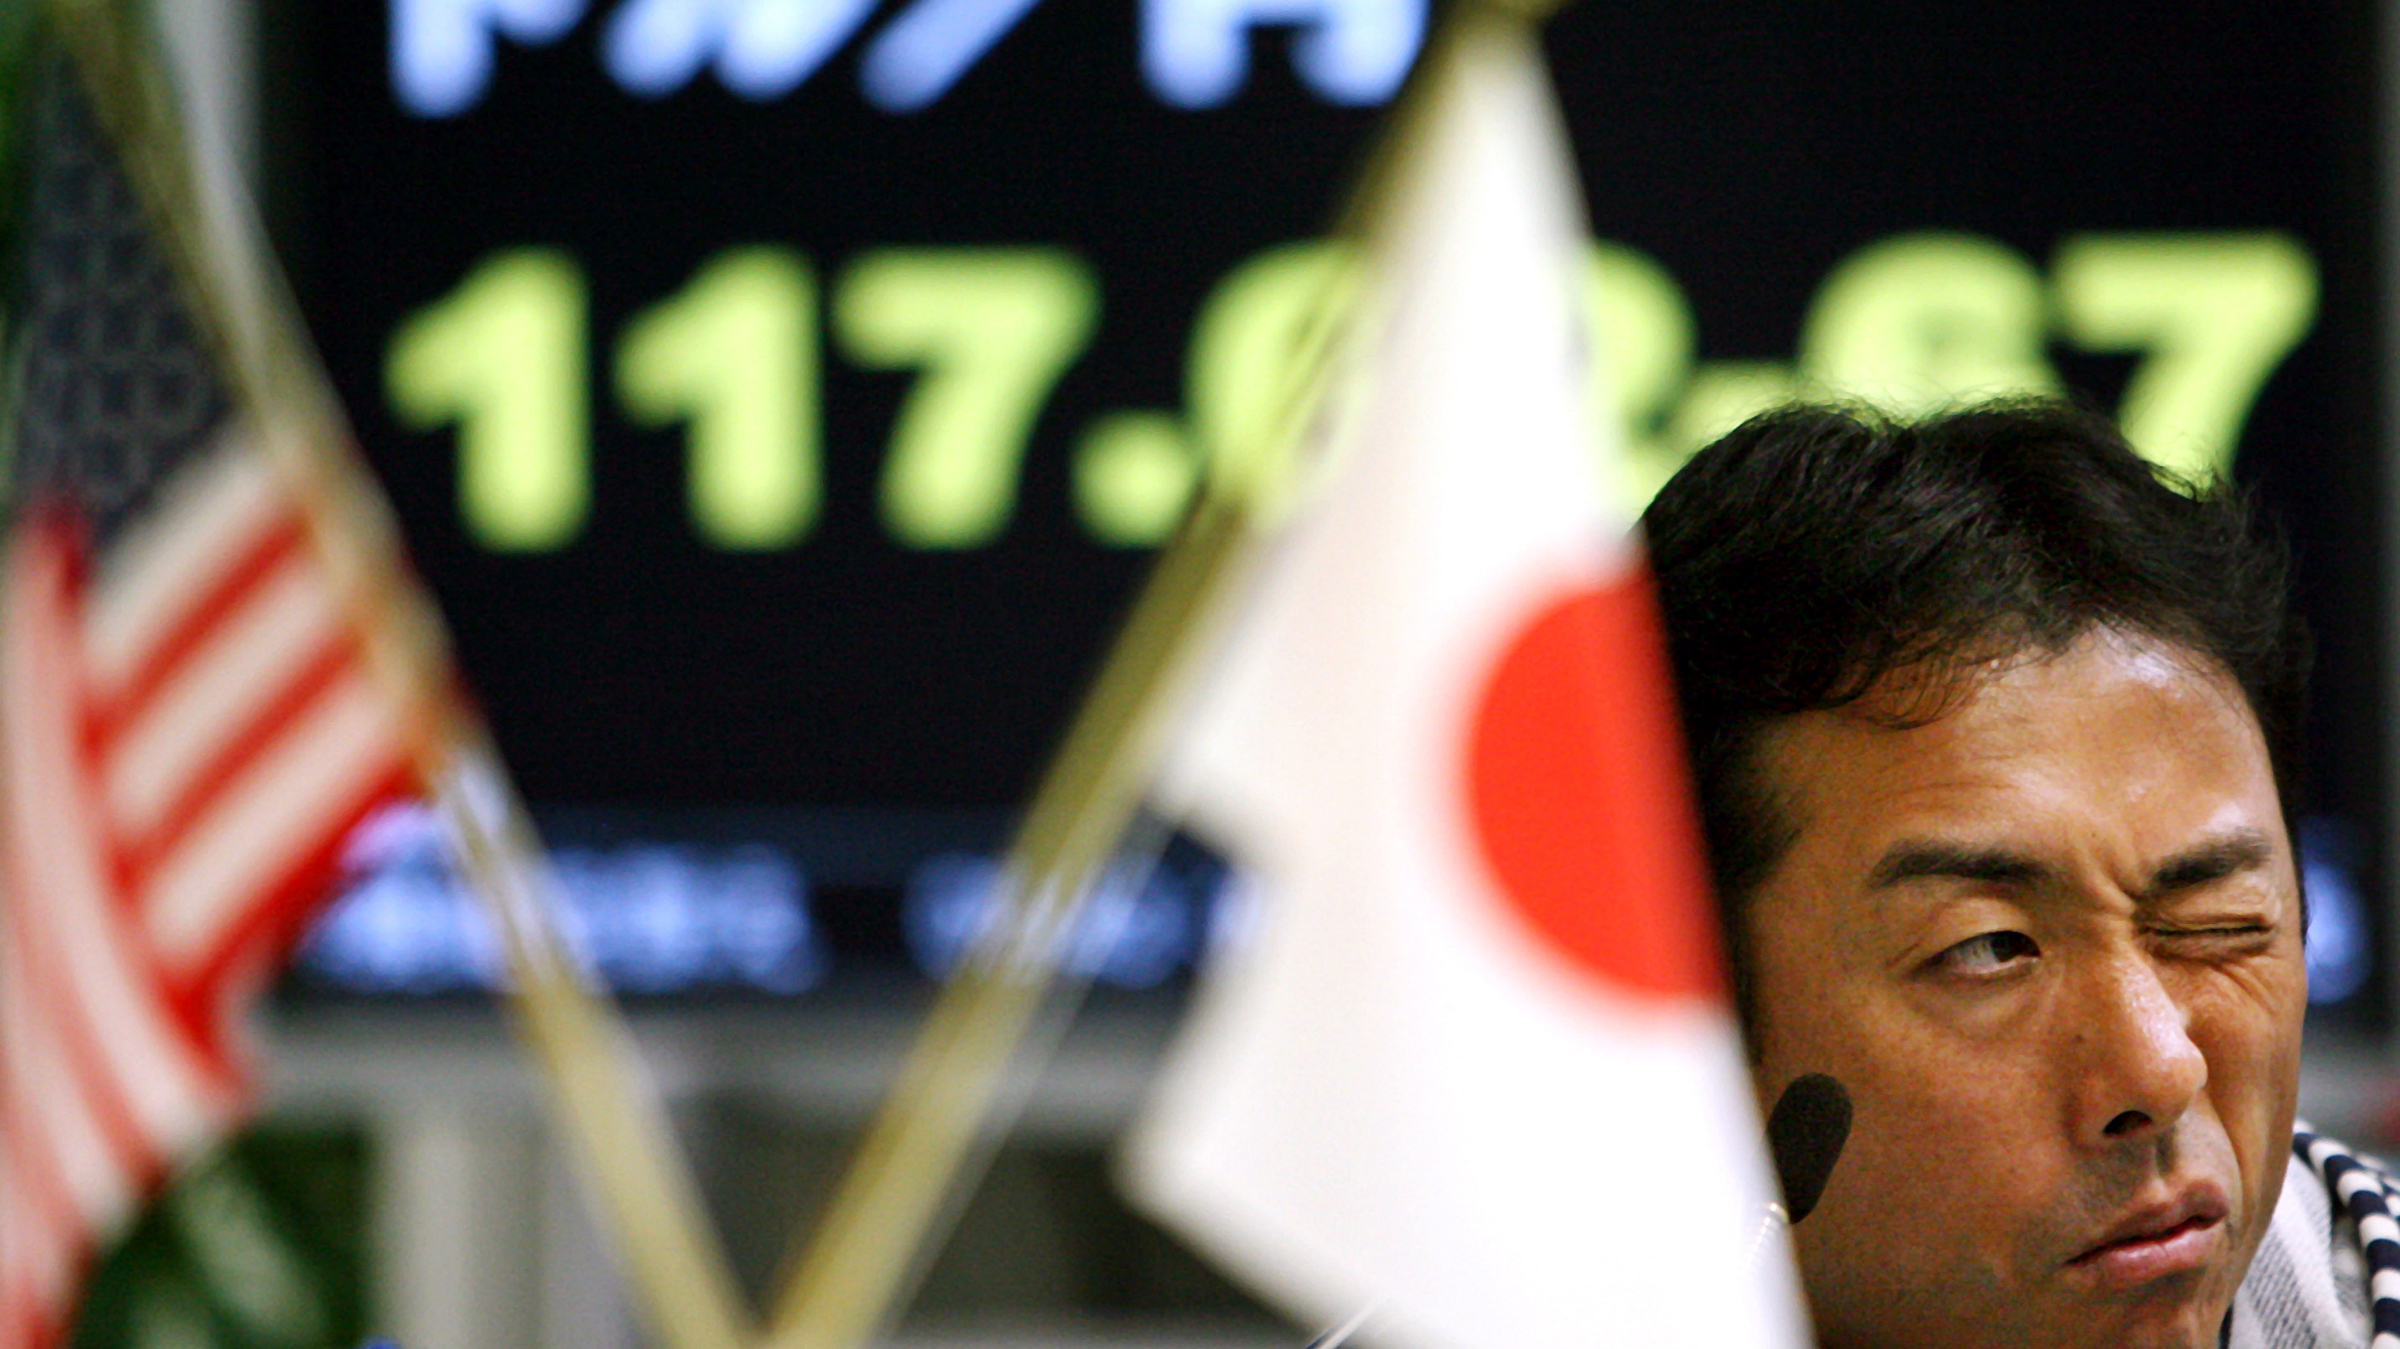 A currency trader takes in calls from clients for orders at a money brokerage in Tokyo as the U.S. dollar was trading at 117 yen level, down from 118.41 yen late Friday in New York Monday, Aug 6, 2007. (AP Photo/Junji Kurokawa)